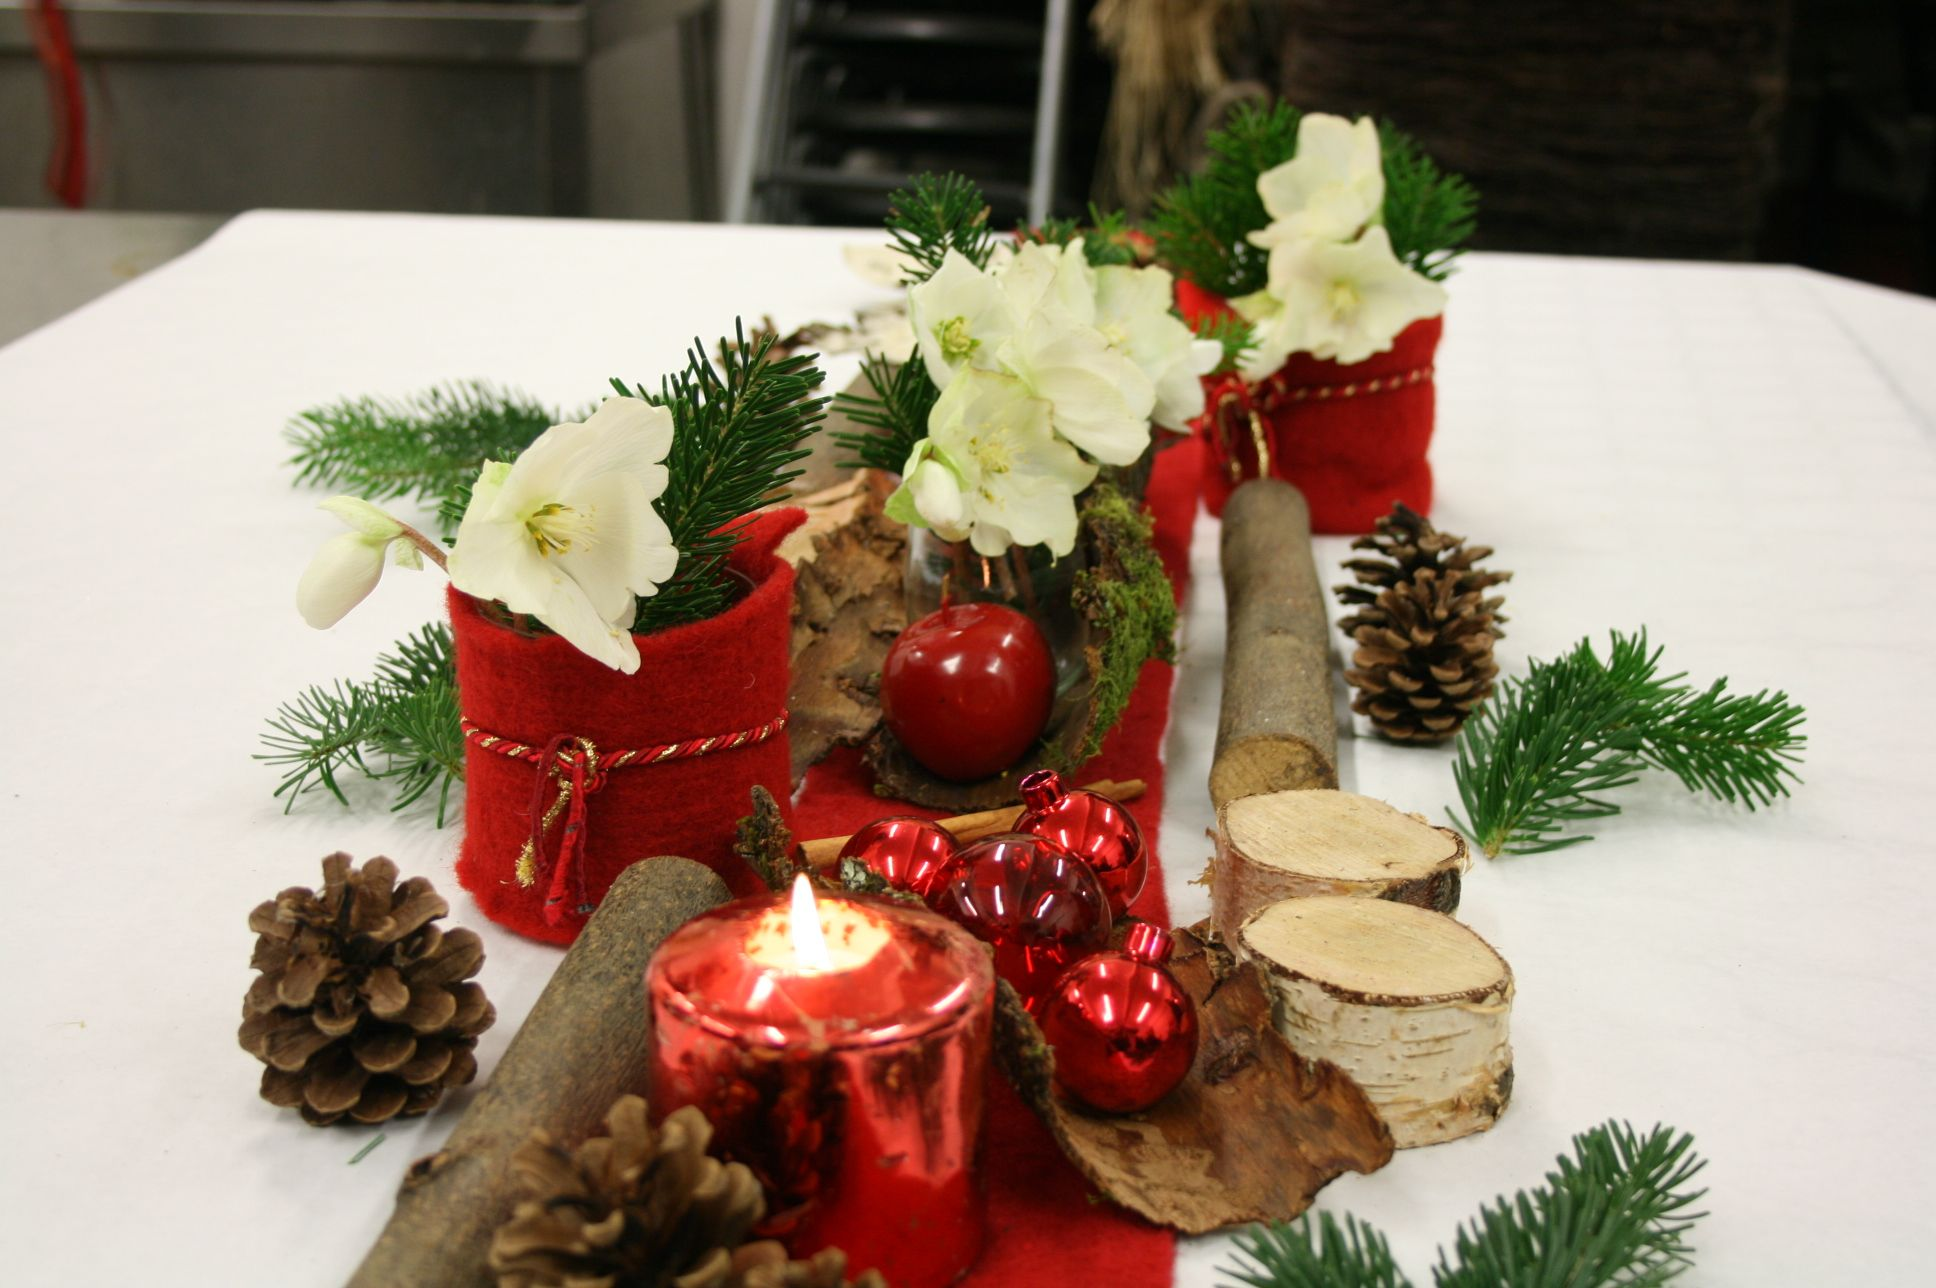 D coration de no l chemin de table en rouge et blanc - Decoration table de noel rouge et blanc ...